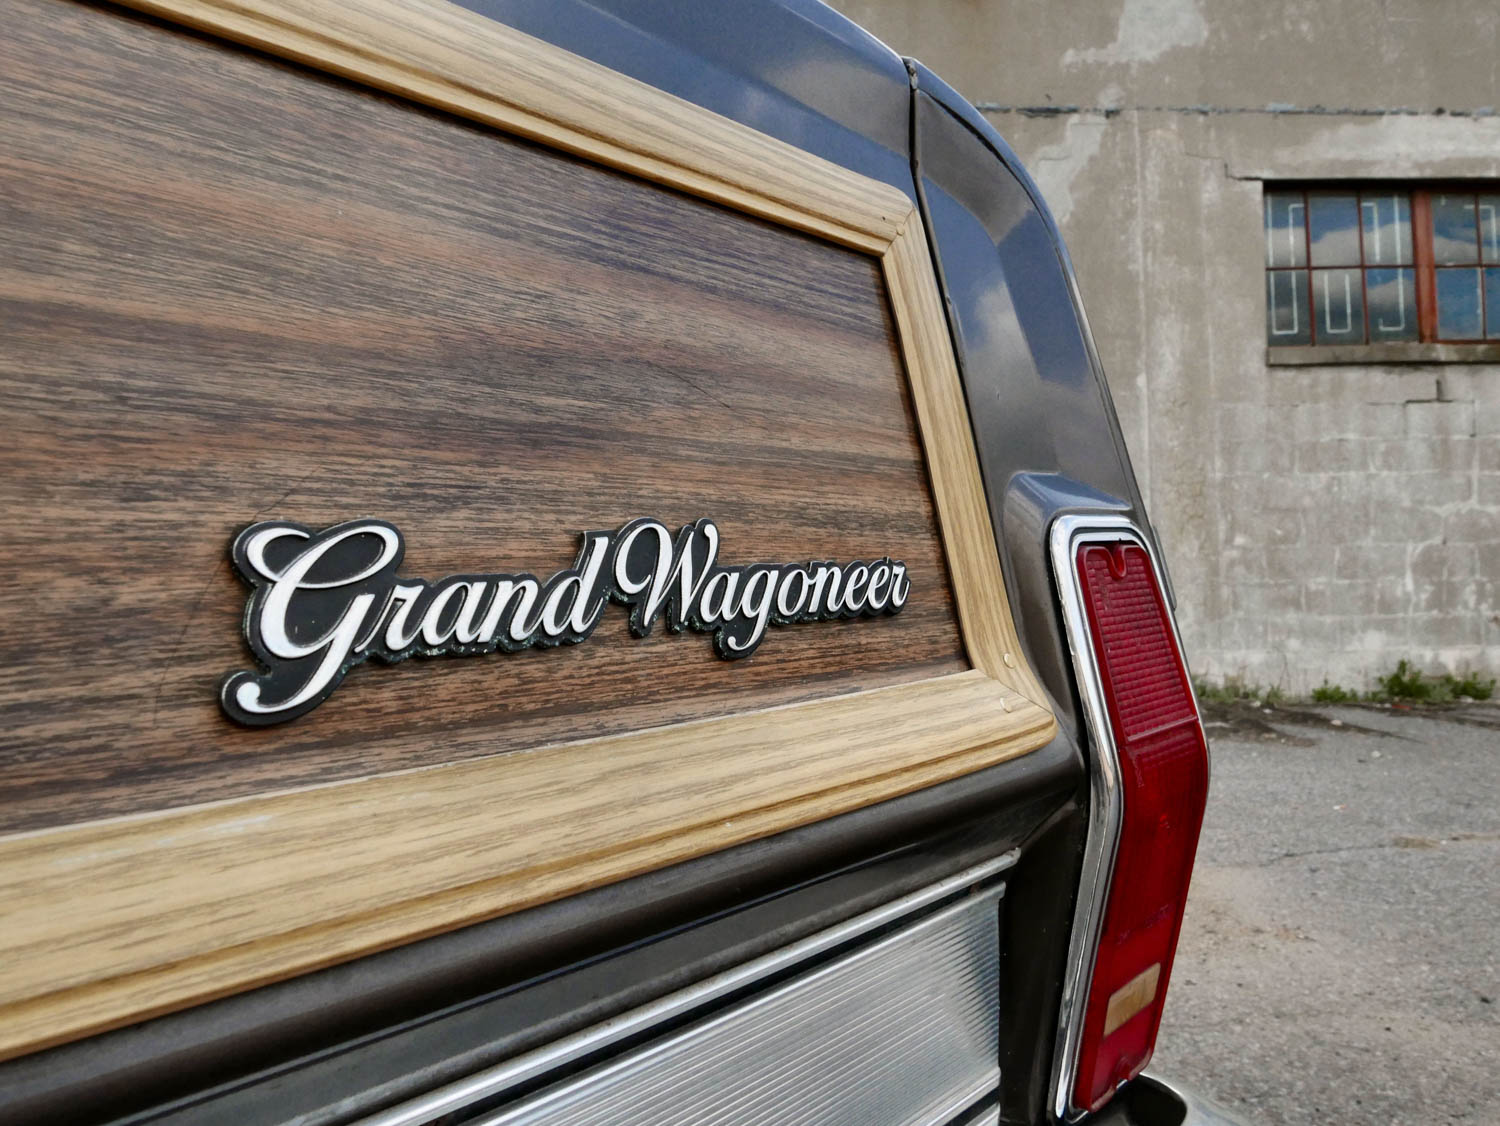 1987 Jeep Grand Wagoneer badge